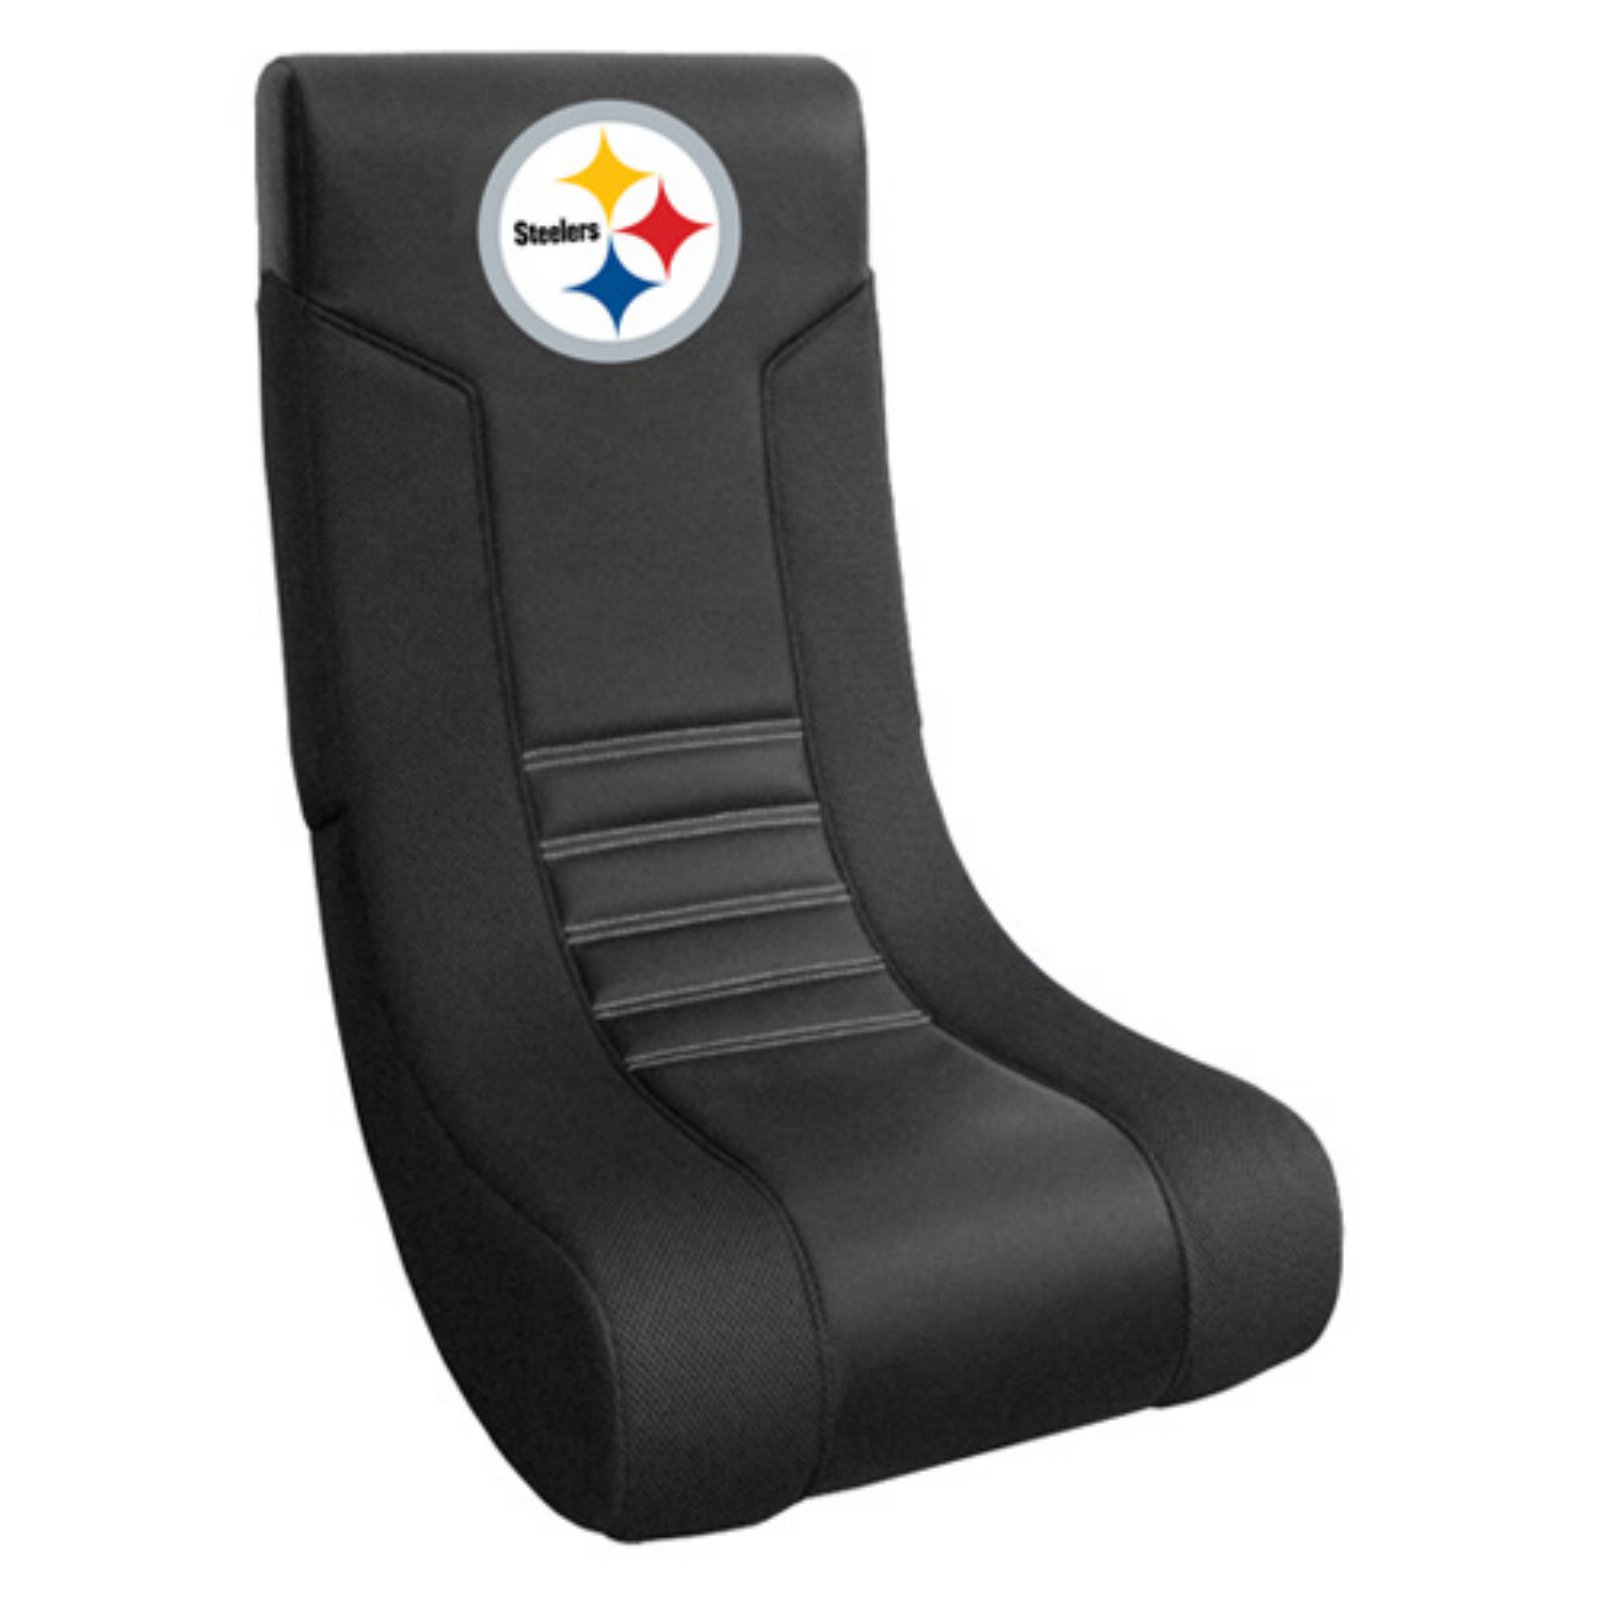 Imperial Nfl Collapsible Video Game Chair Walmart Com